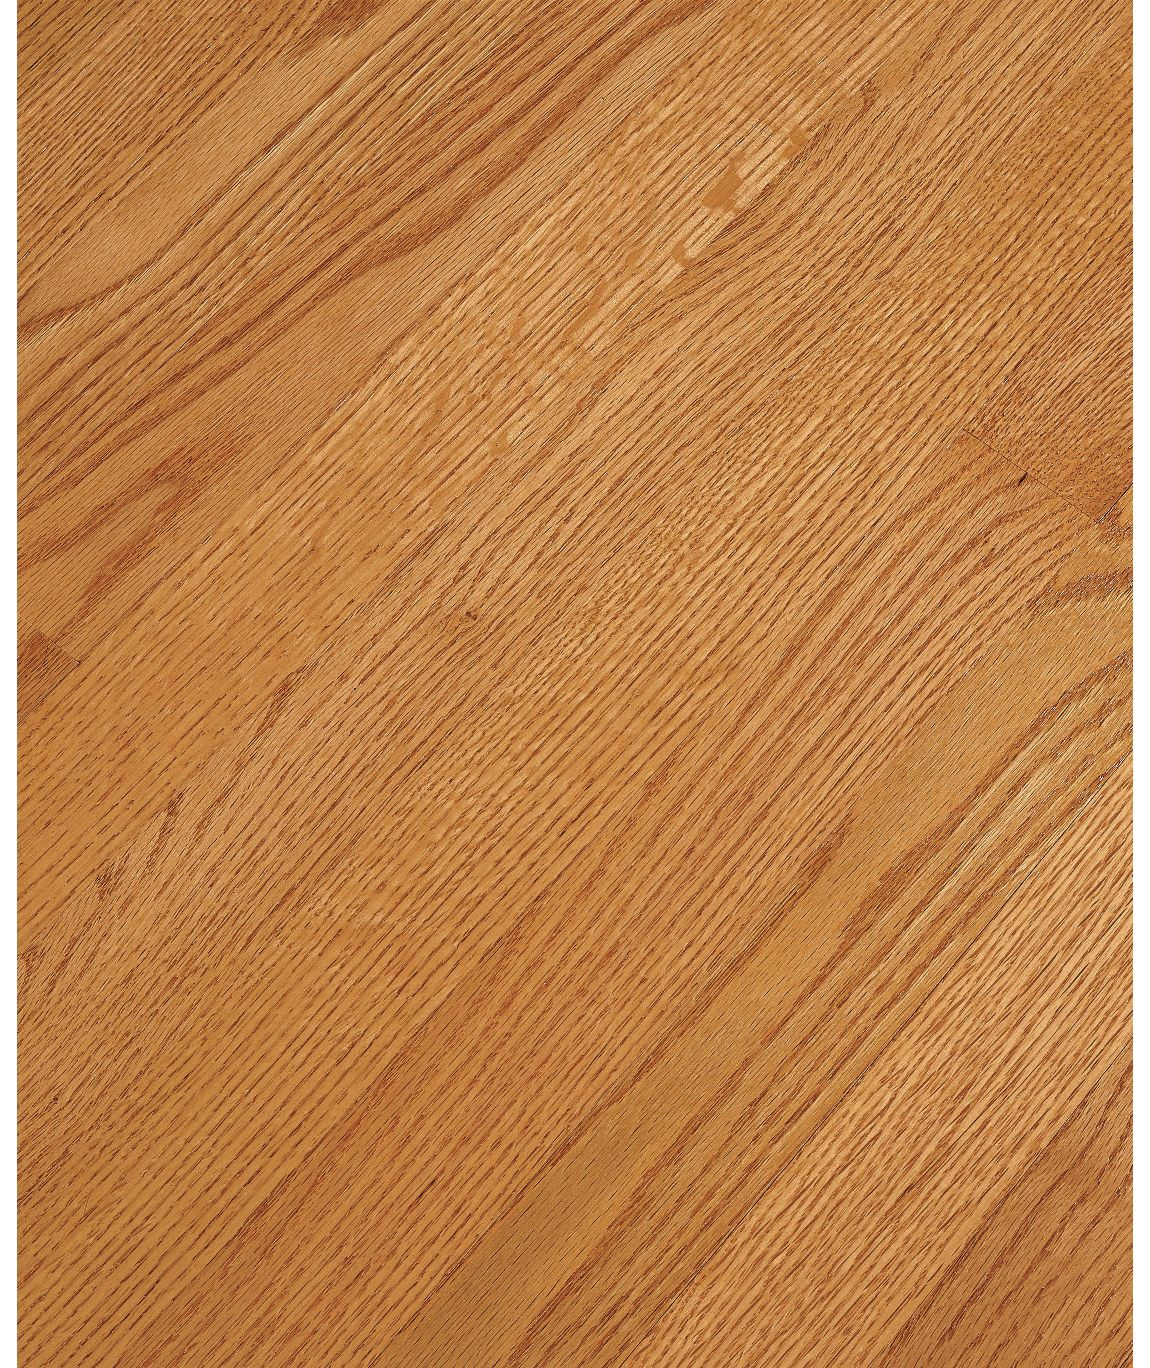 this flooring luxuriant floor binet hardwood download floors cleaner kitchen for here design decor bruce picture an butterscotch rev ideas